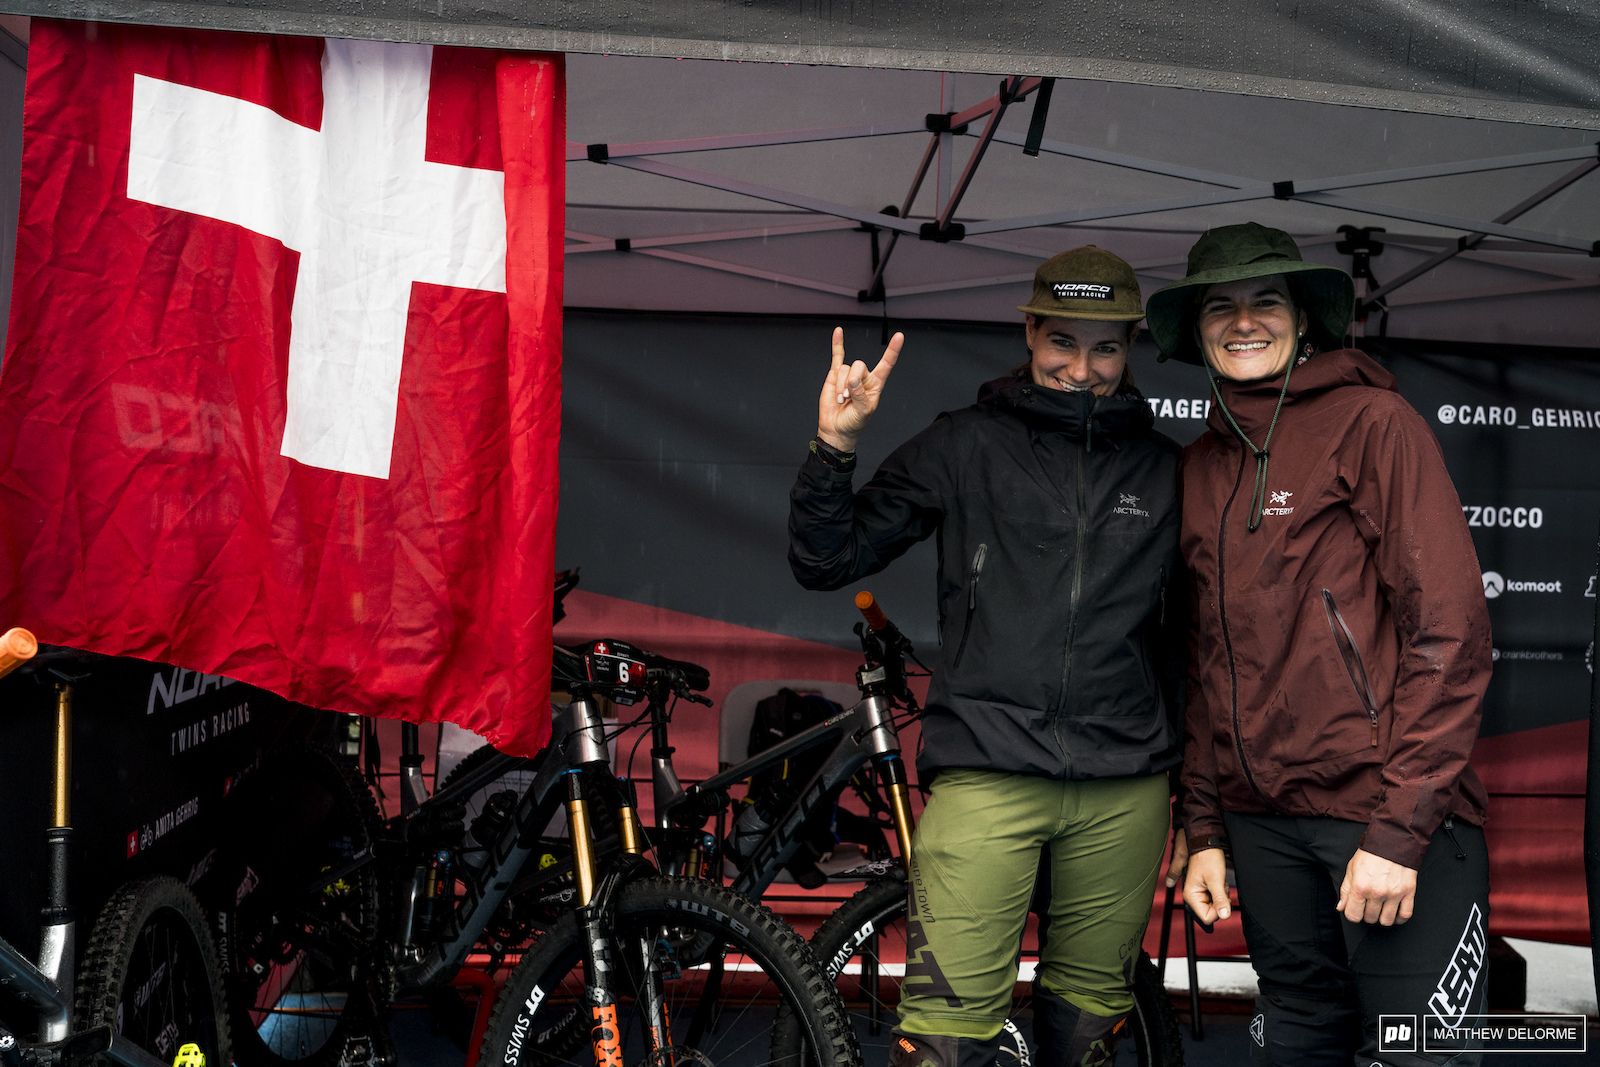 Anita and Caro Gherig are stoked to be racing at home.